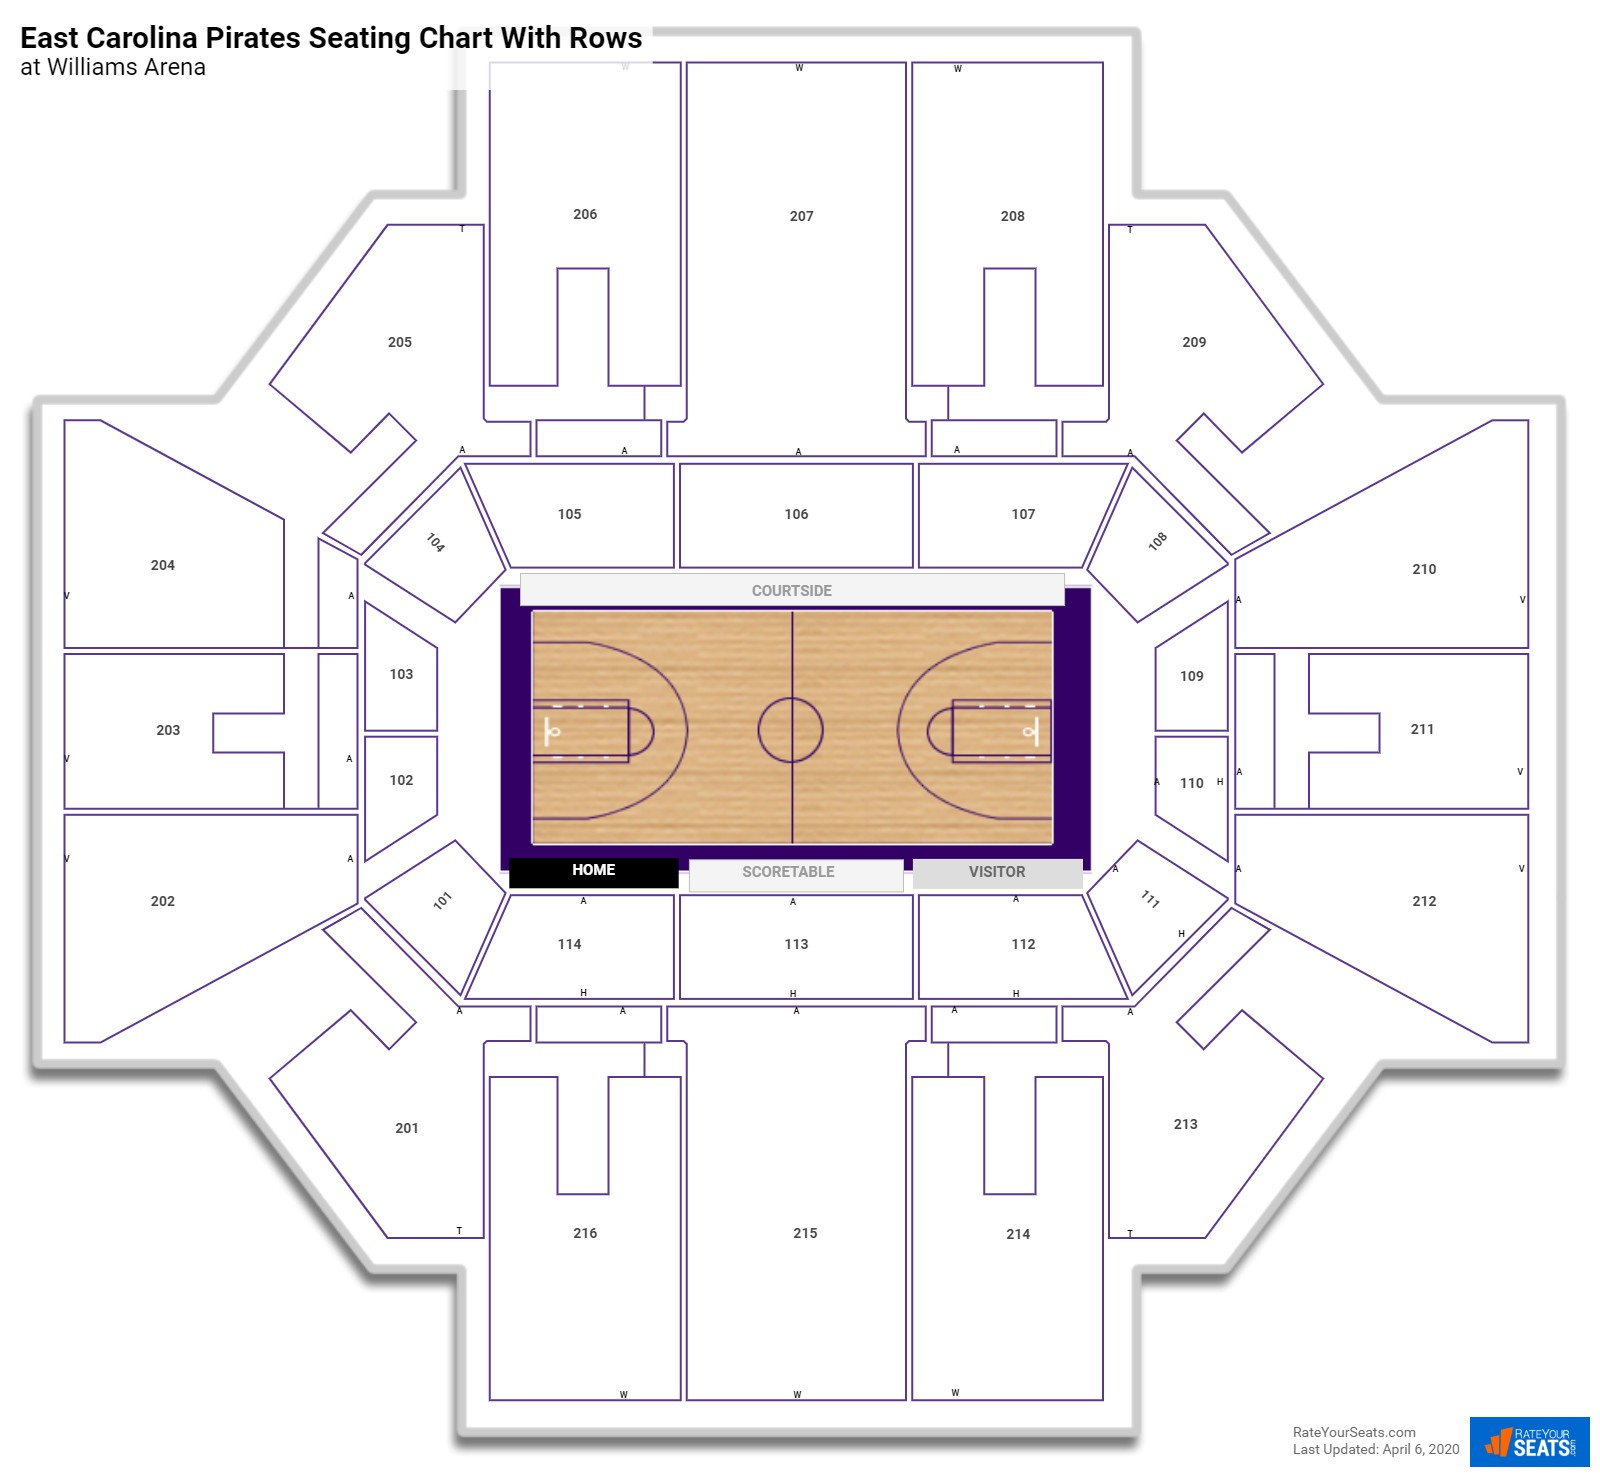 Williams Arena seating chart with rows